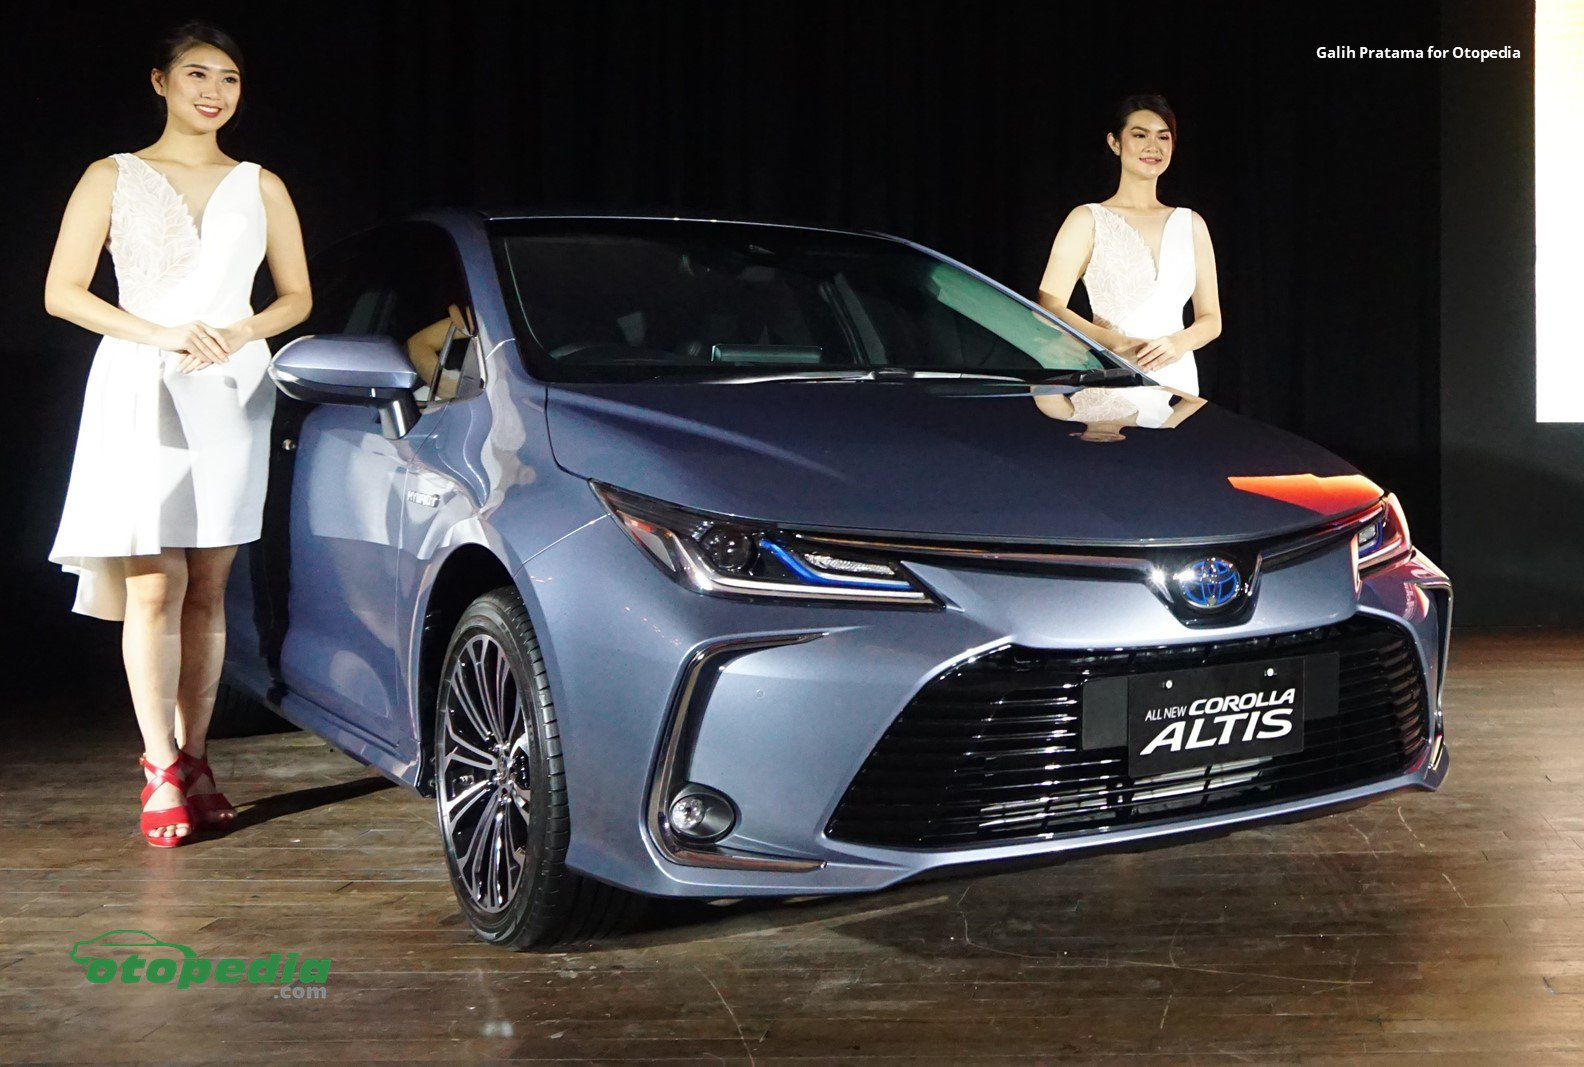 Toyota All New Corolla Altis.jpg